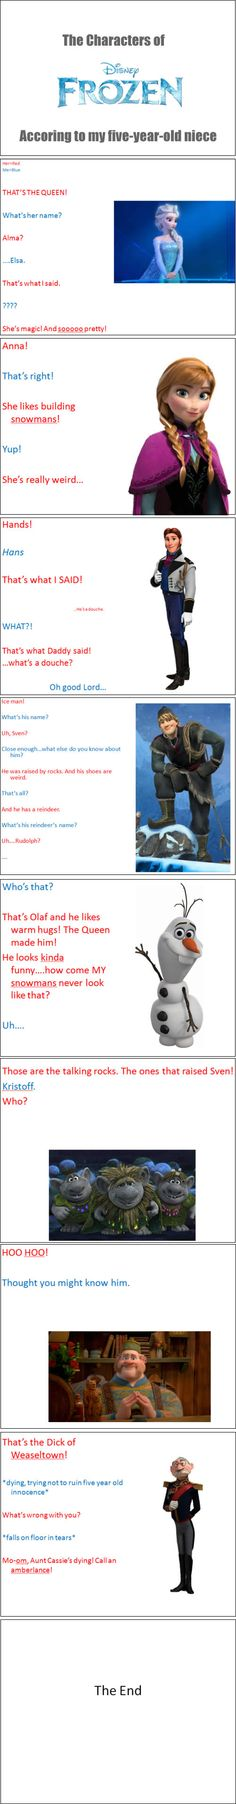 The characters of Frozen according to a 5-year-old girl.